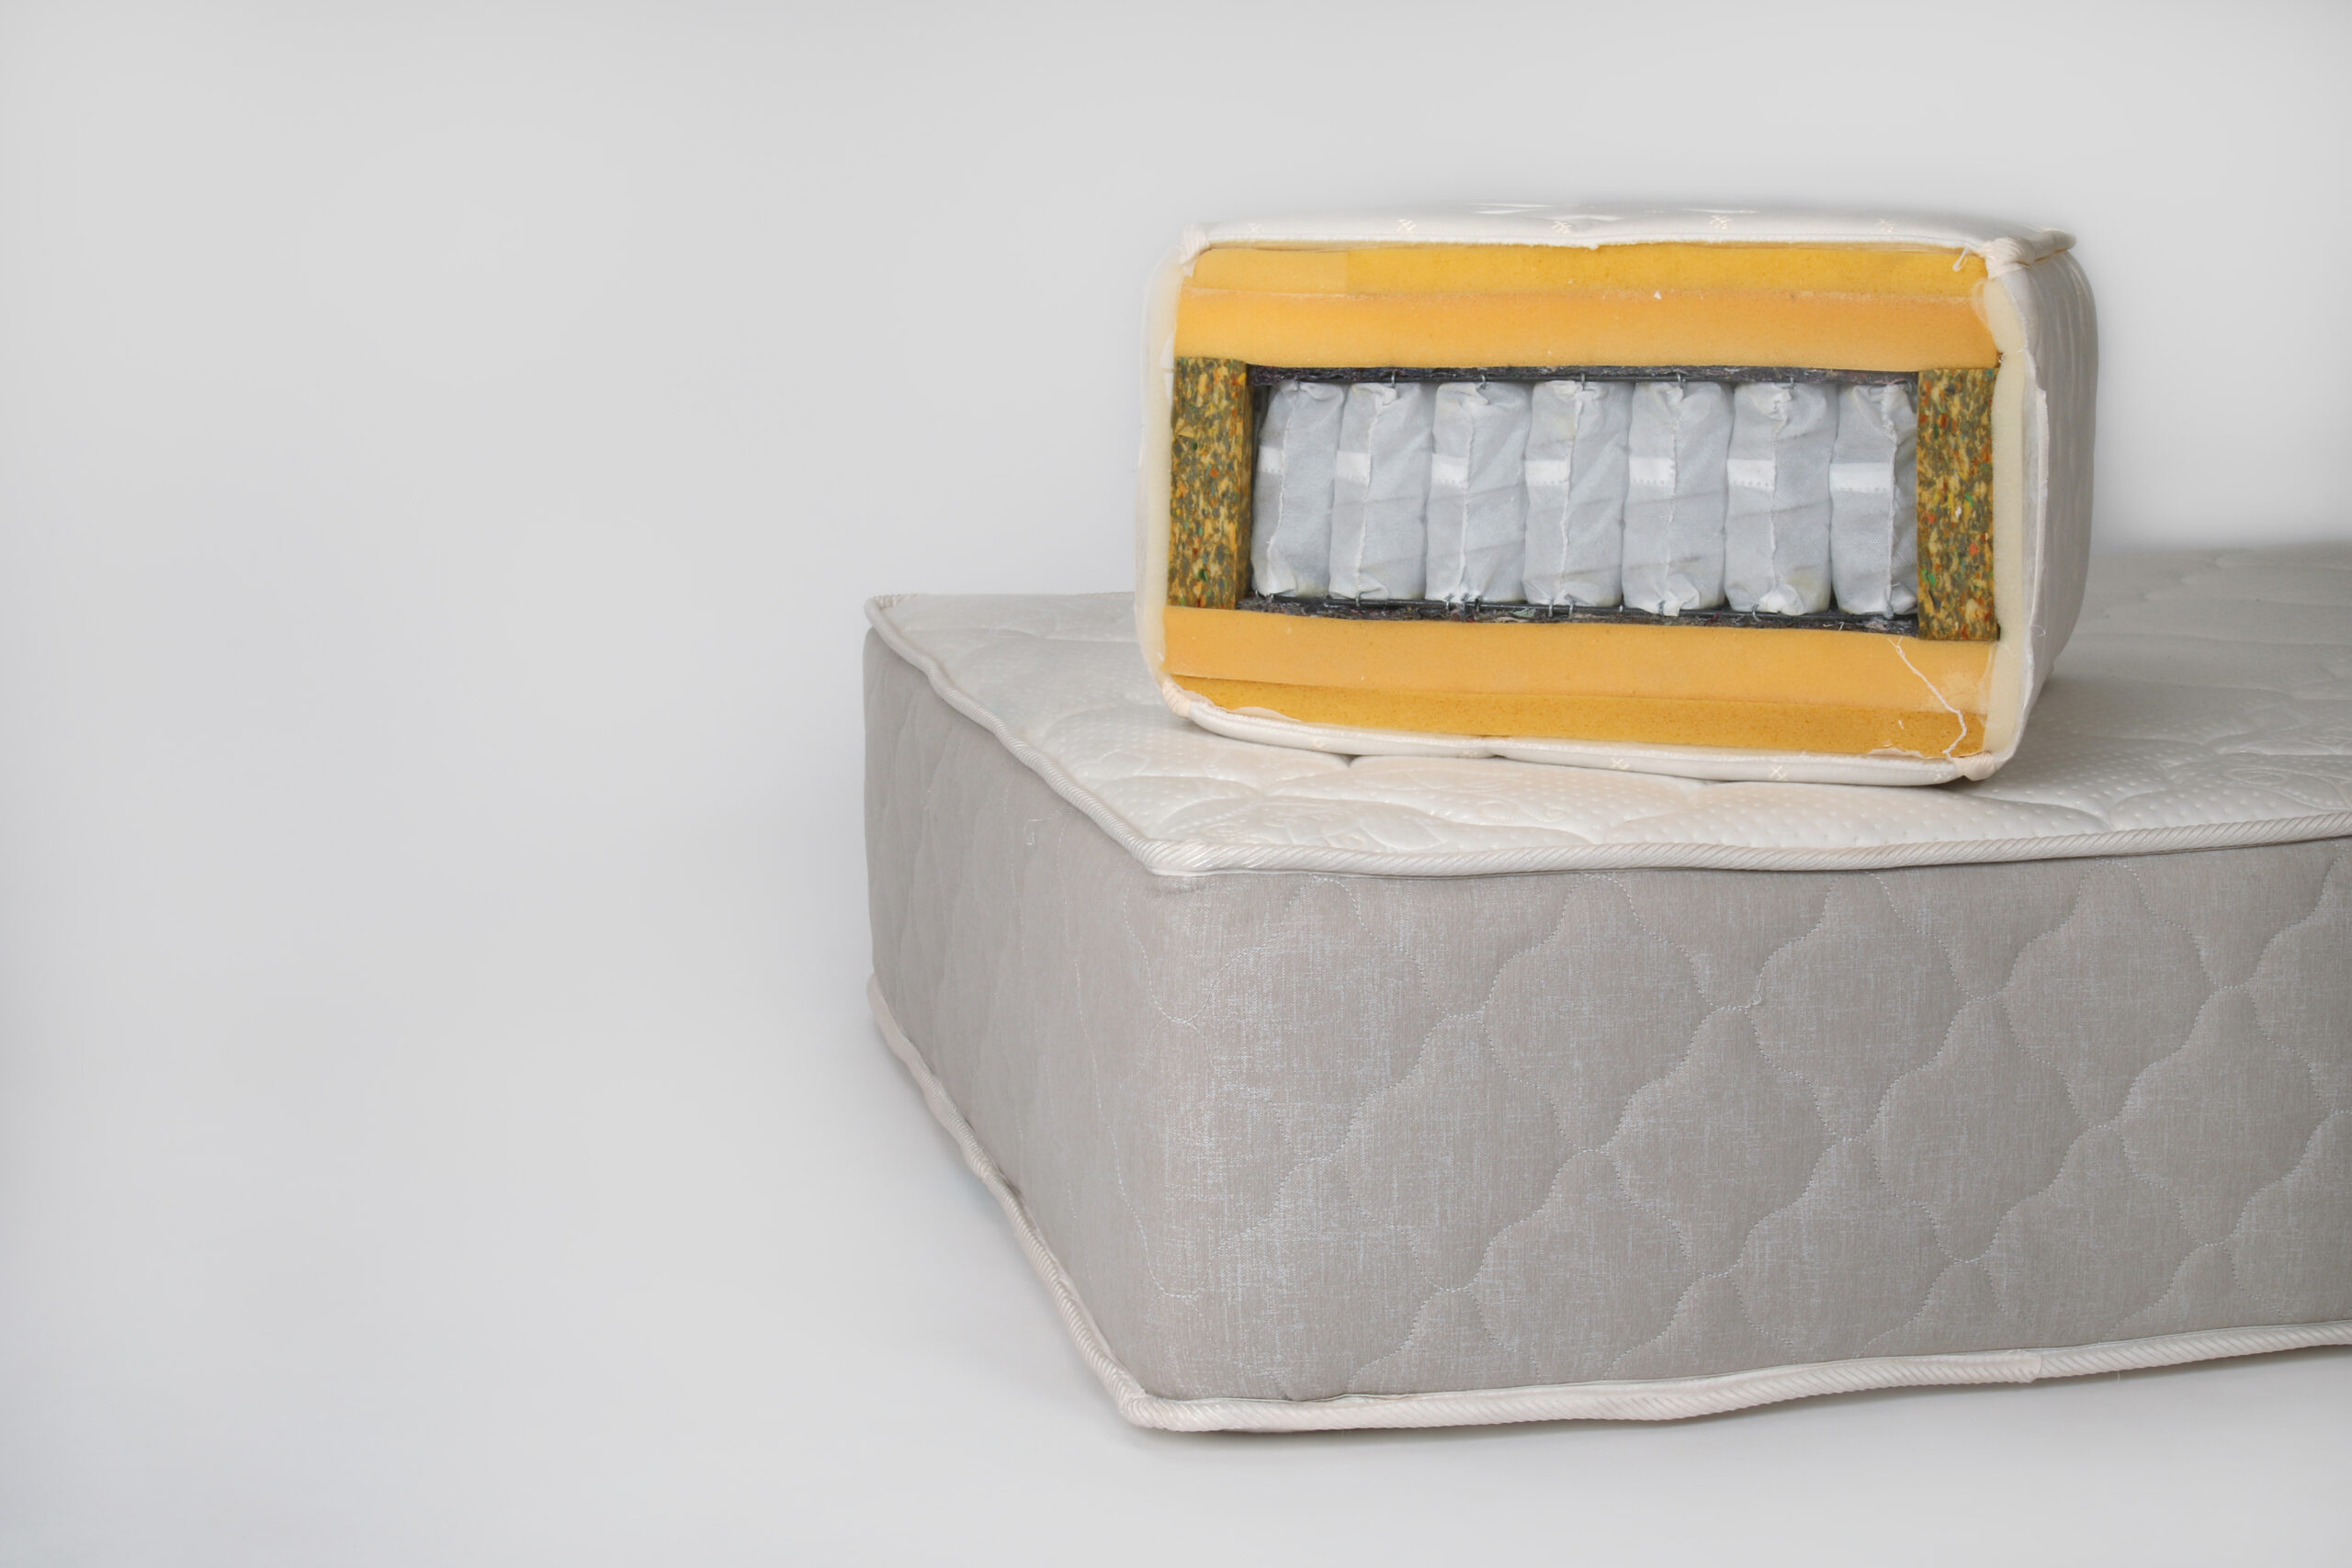 Luxe Sleep pocketed springs mattress by NAM House of sleep (picture 3)